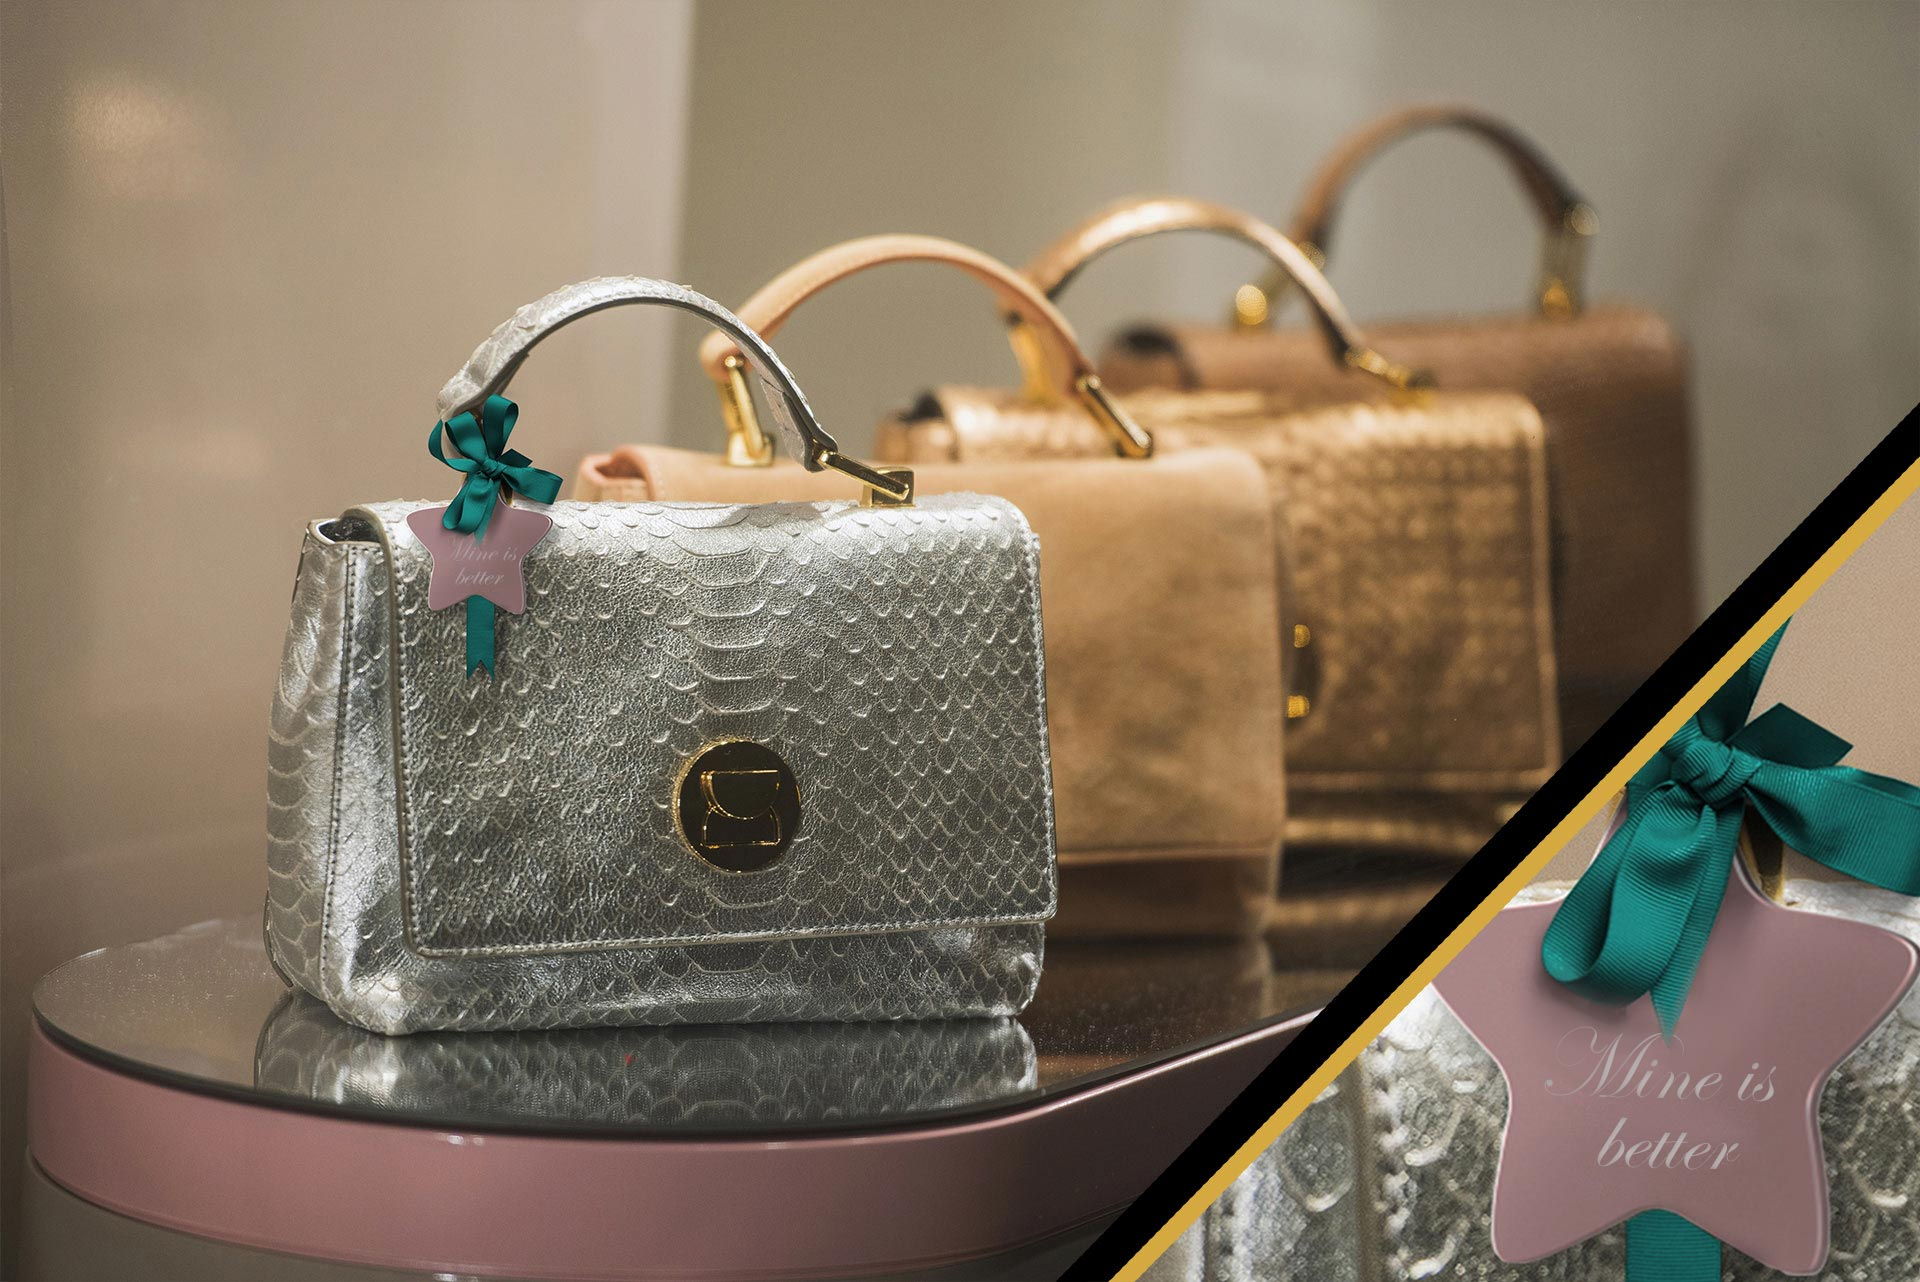 premium handbags on a display with a focus on a personalized charm hanging from a bag to luxury goods